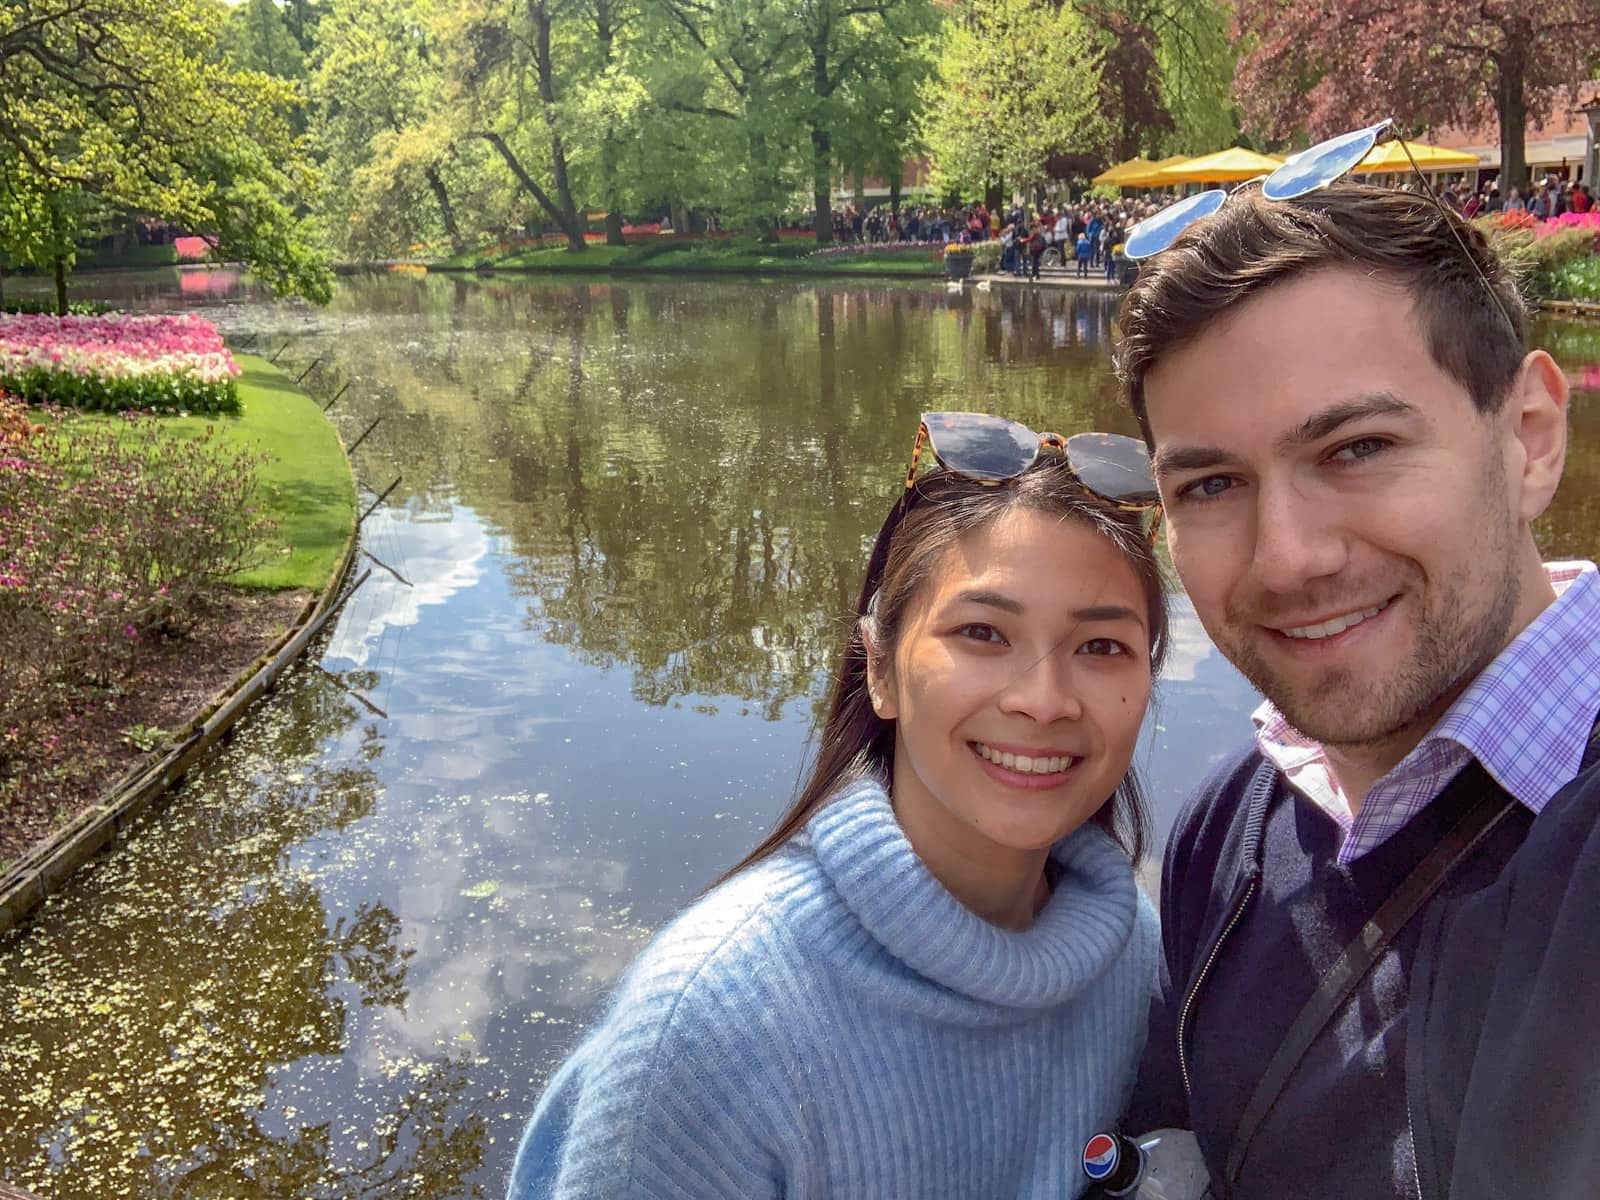 A man and woman smiling and taking a selfie in front of a river with several leafy debris in it. On the banks of the water are rows of planted tulips in bright colours.